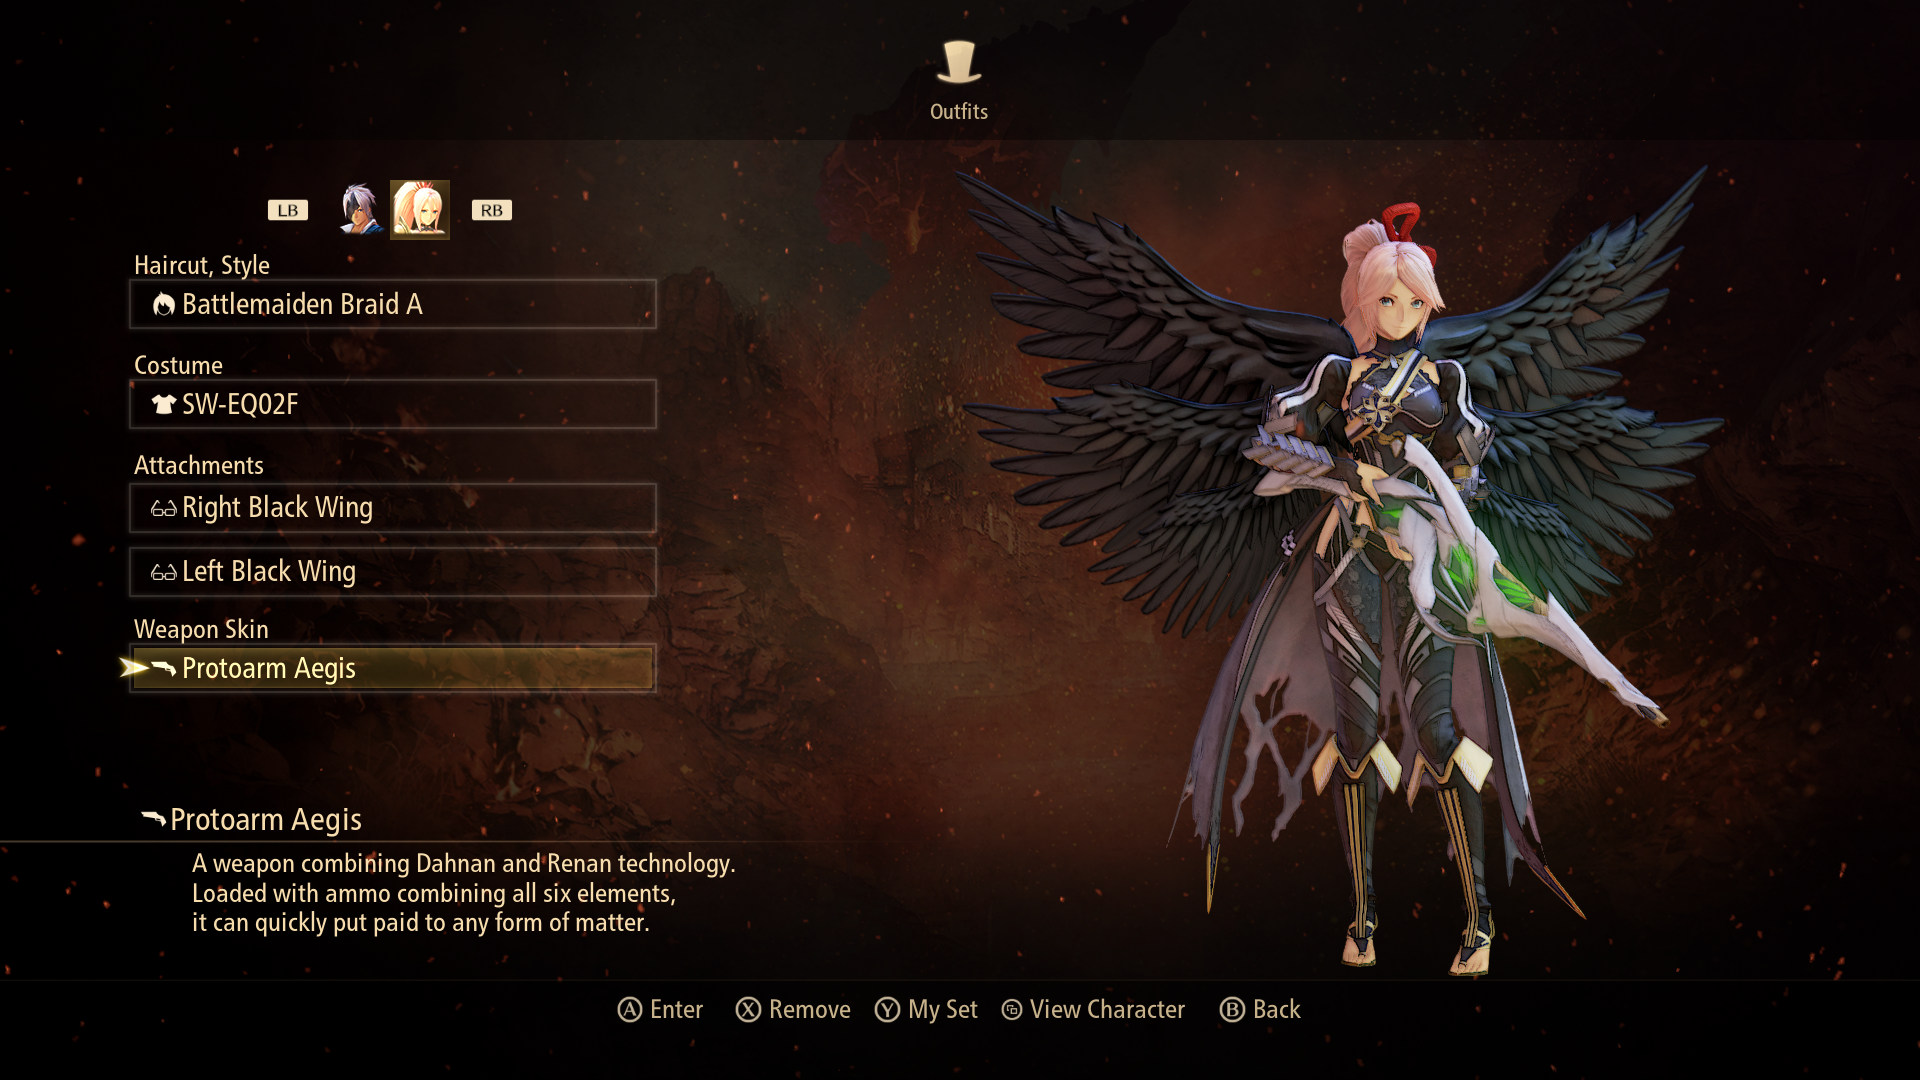 tales-of-arise-outfit-change-screen